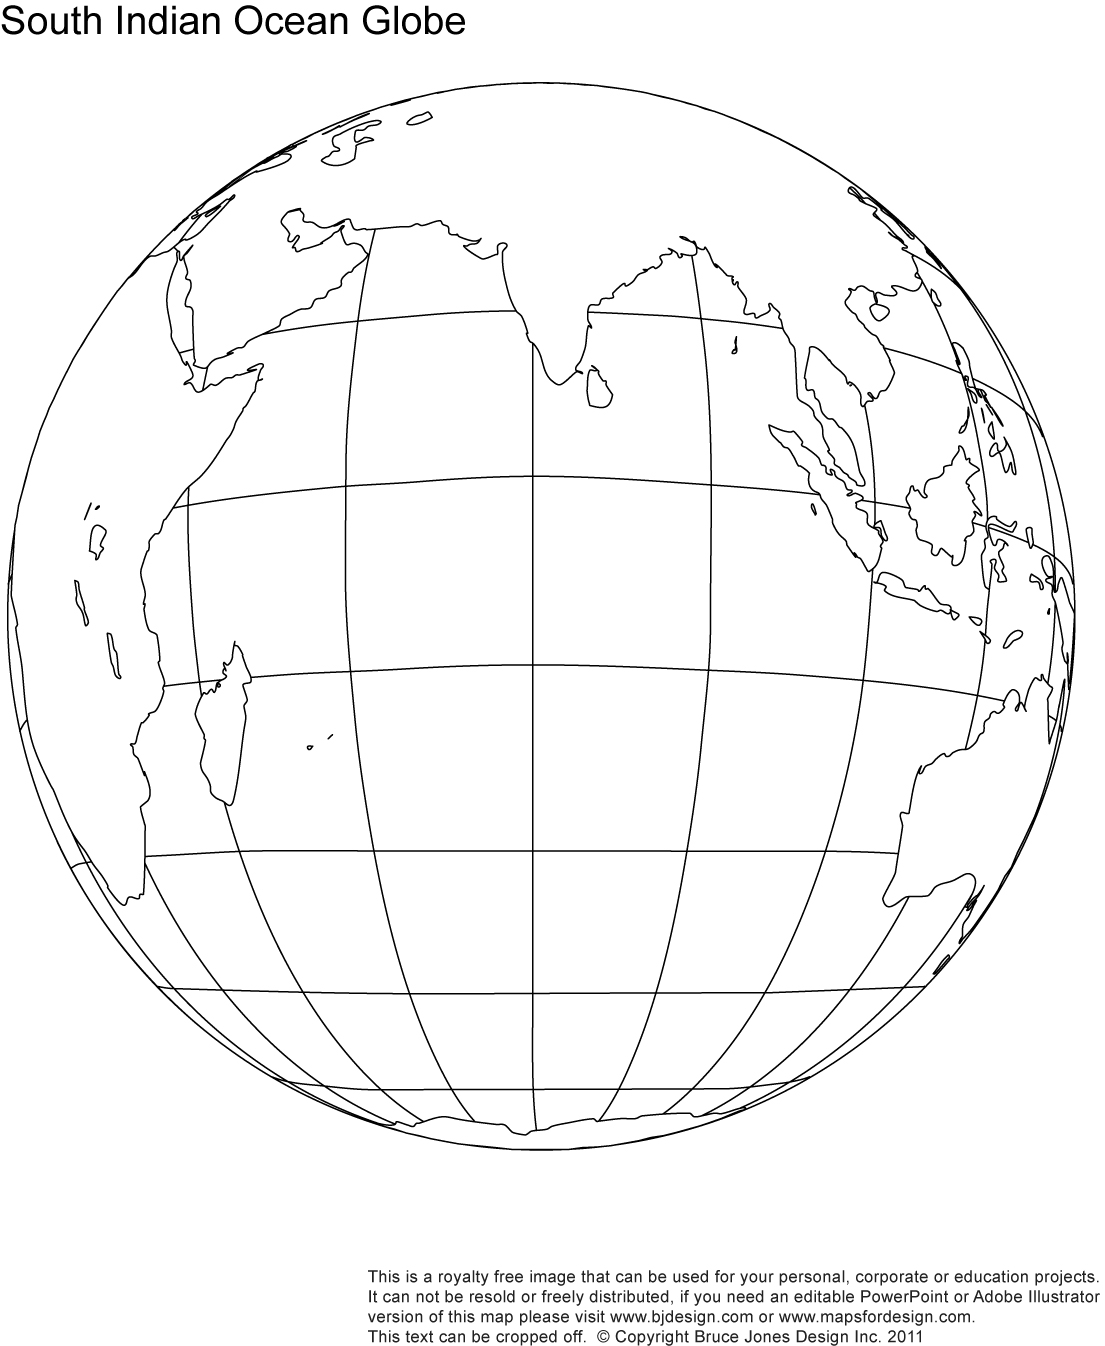 South Indian Ocean Globe map, blank, printable, outline, royalty free, jpg map